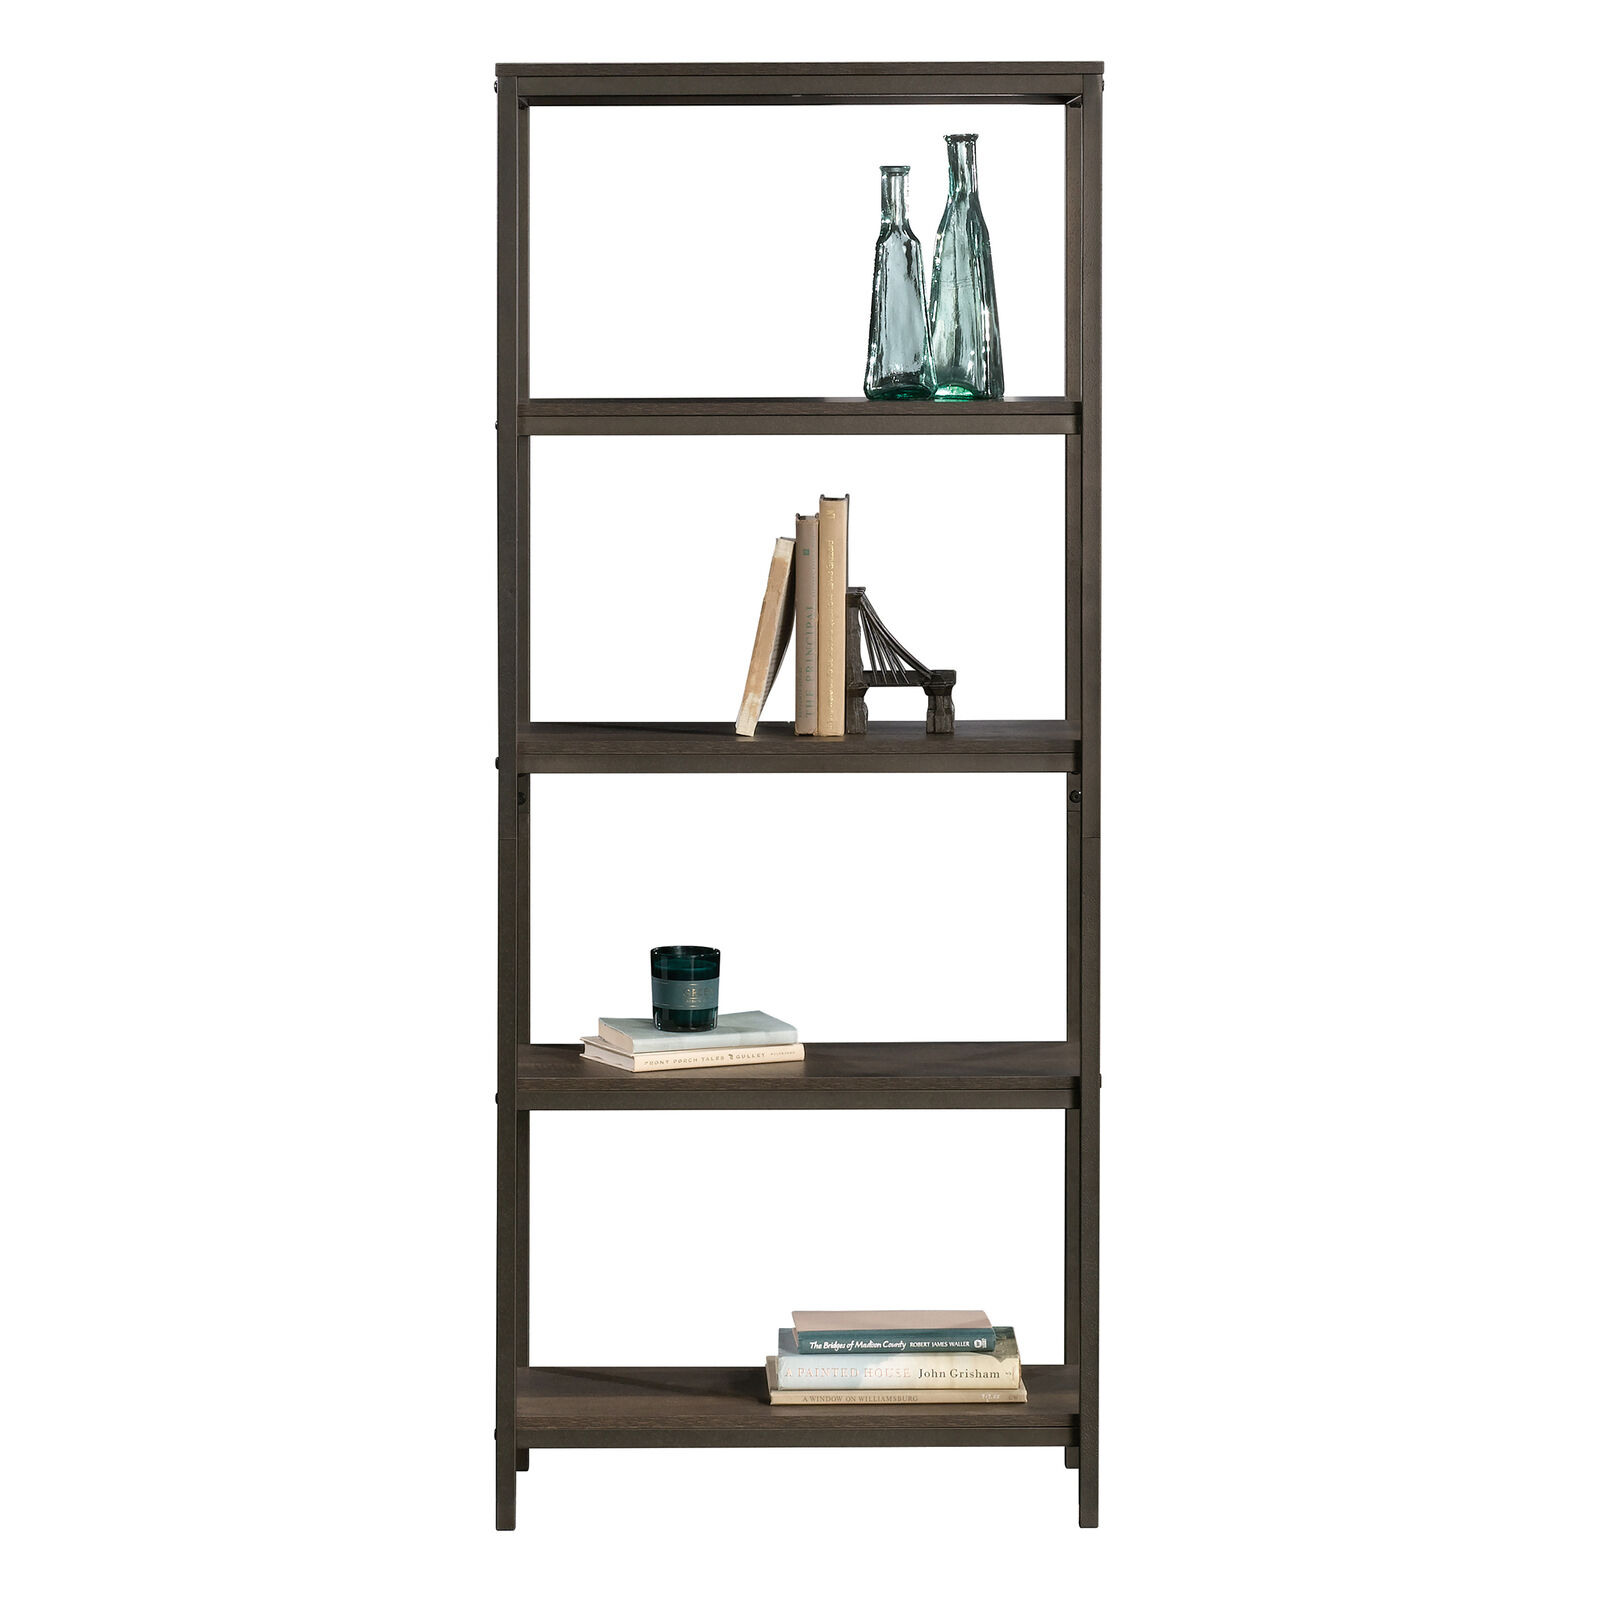 Tall Bookcase Shelves 4-Tier Display Rack Stand Storage Shelving Industrial Oak